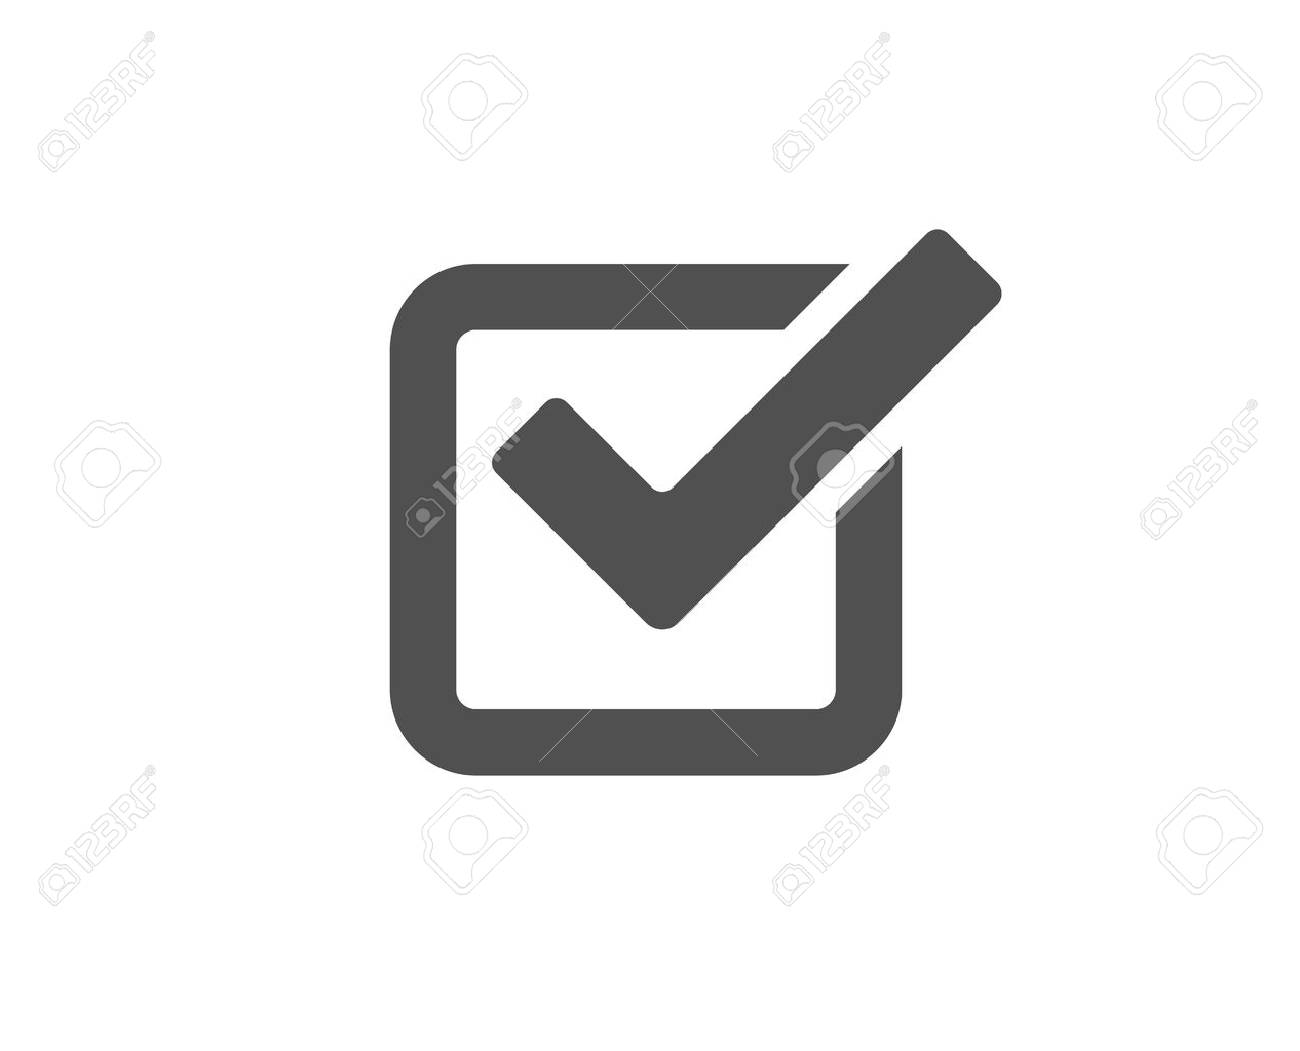 Check simple icon. Approved Tick sign. Confirm, Done or Accept symbol. Quality design elements. Classic style. - 95953026